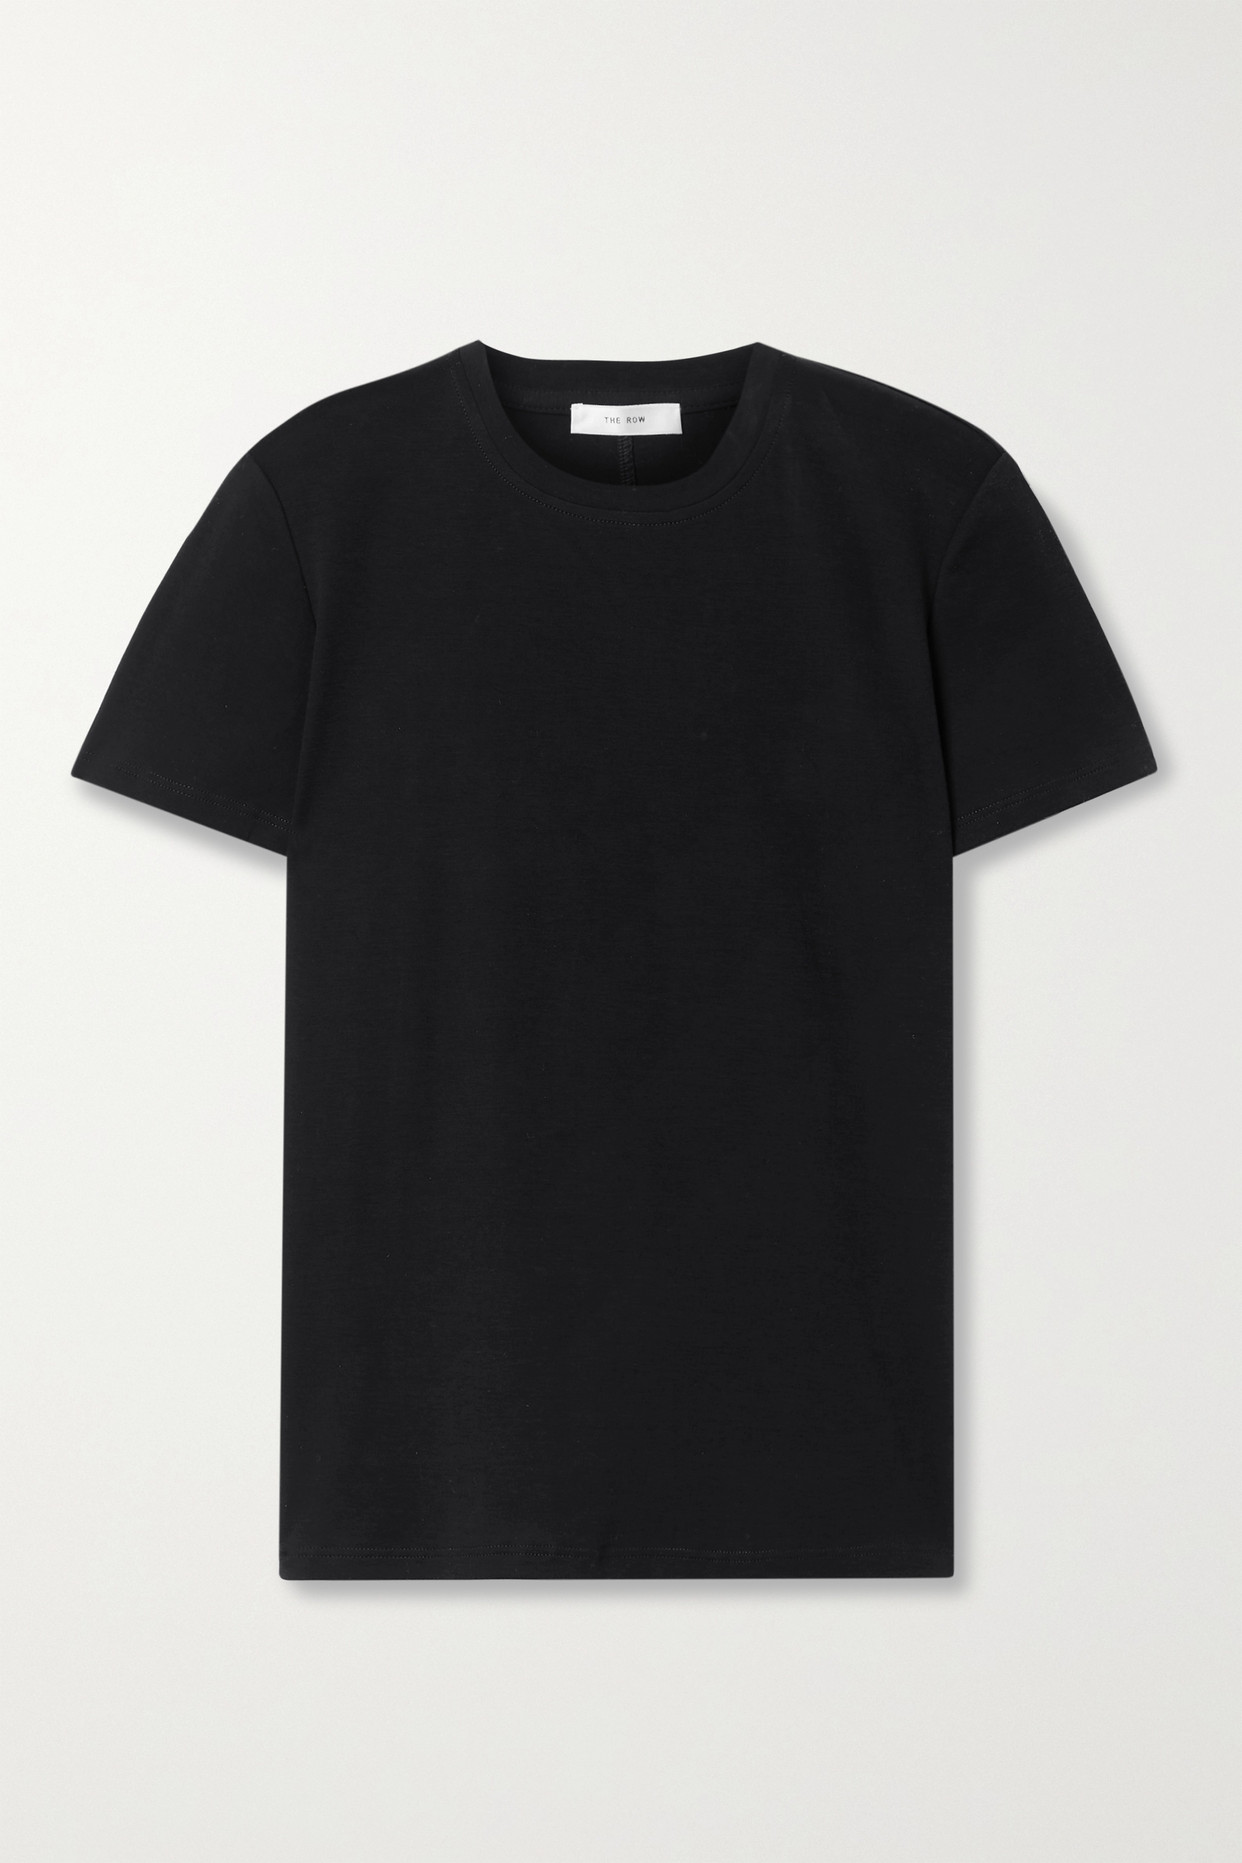 THE ROW - Wesler Cotton-jersey T-shirt - Black - small